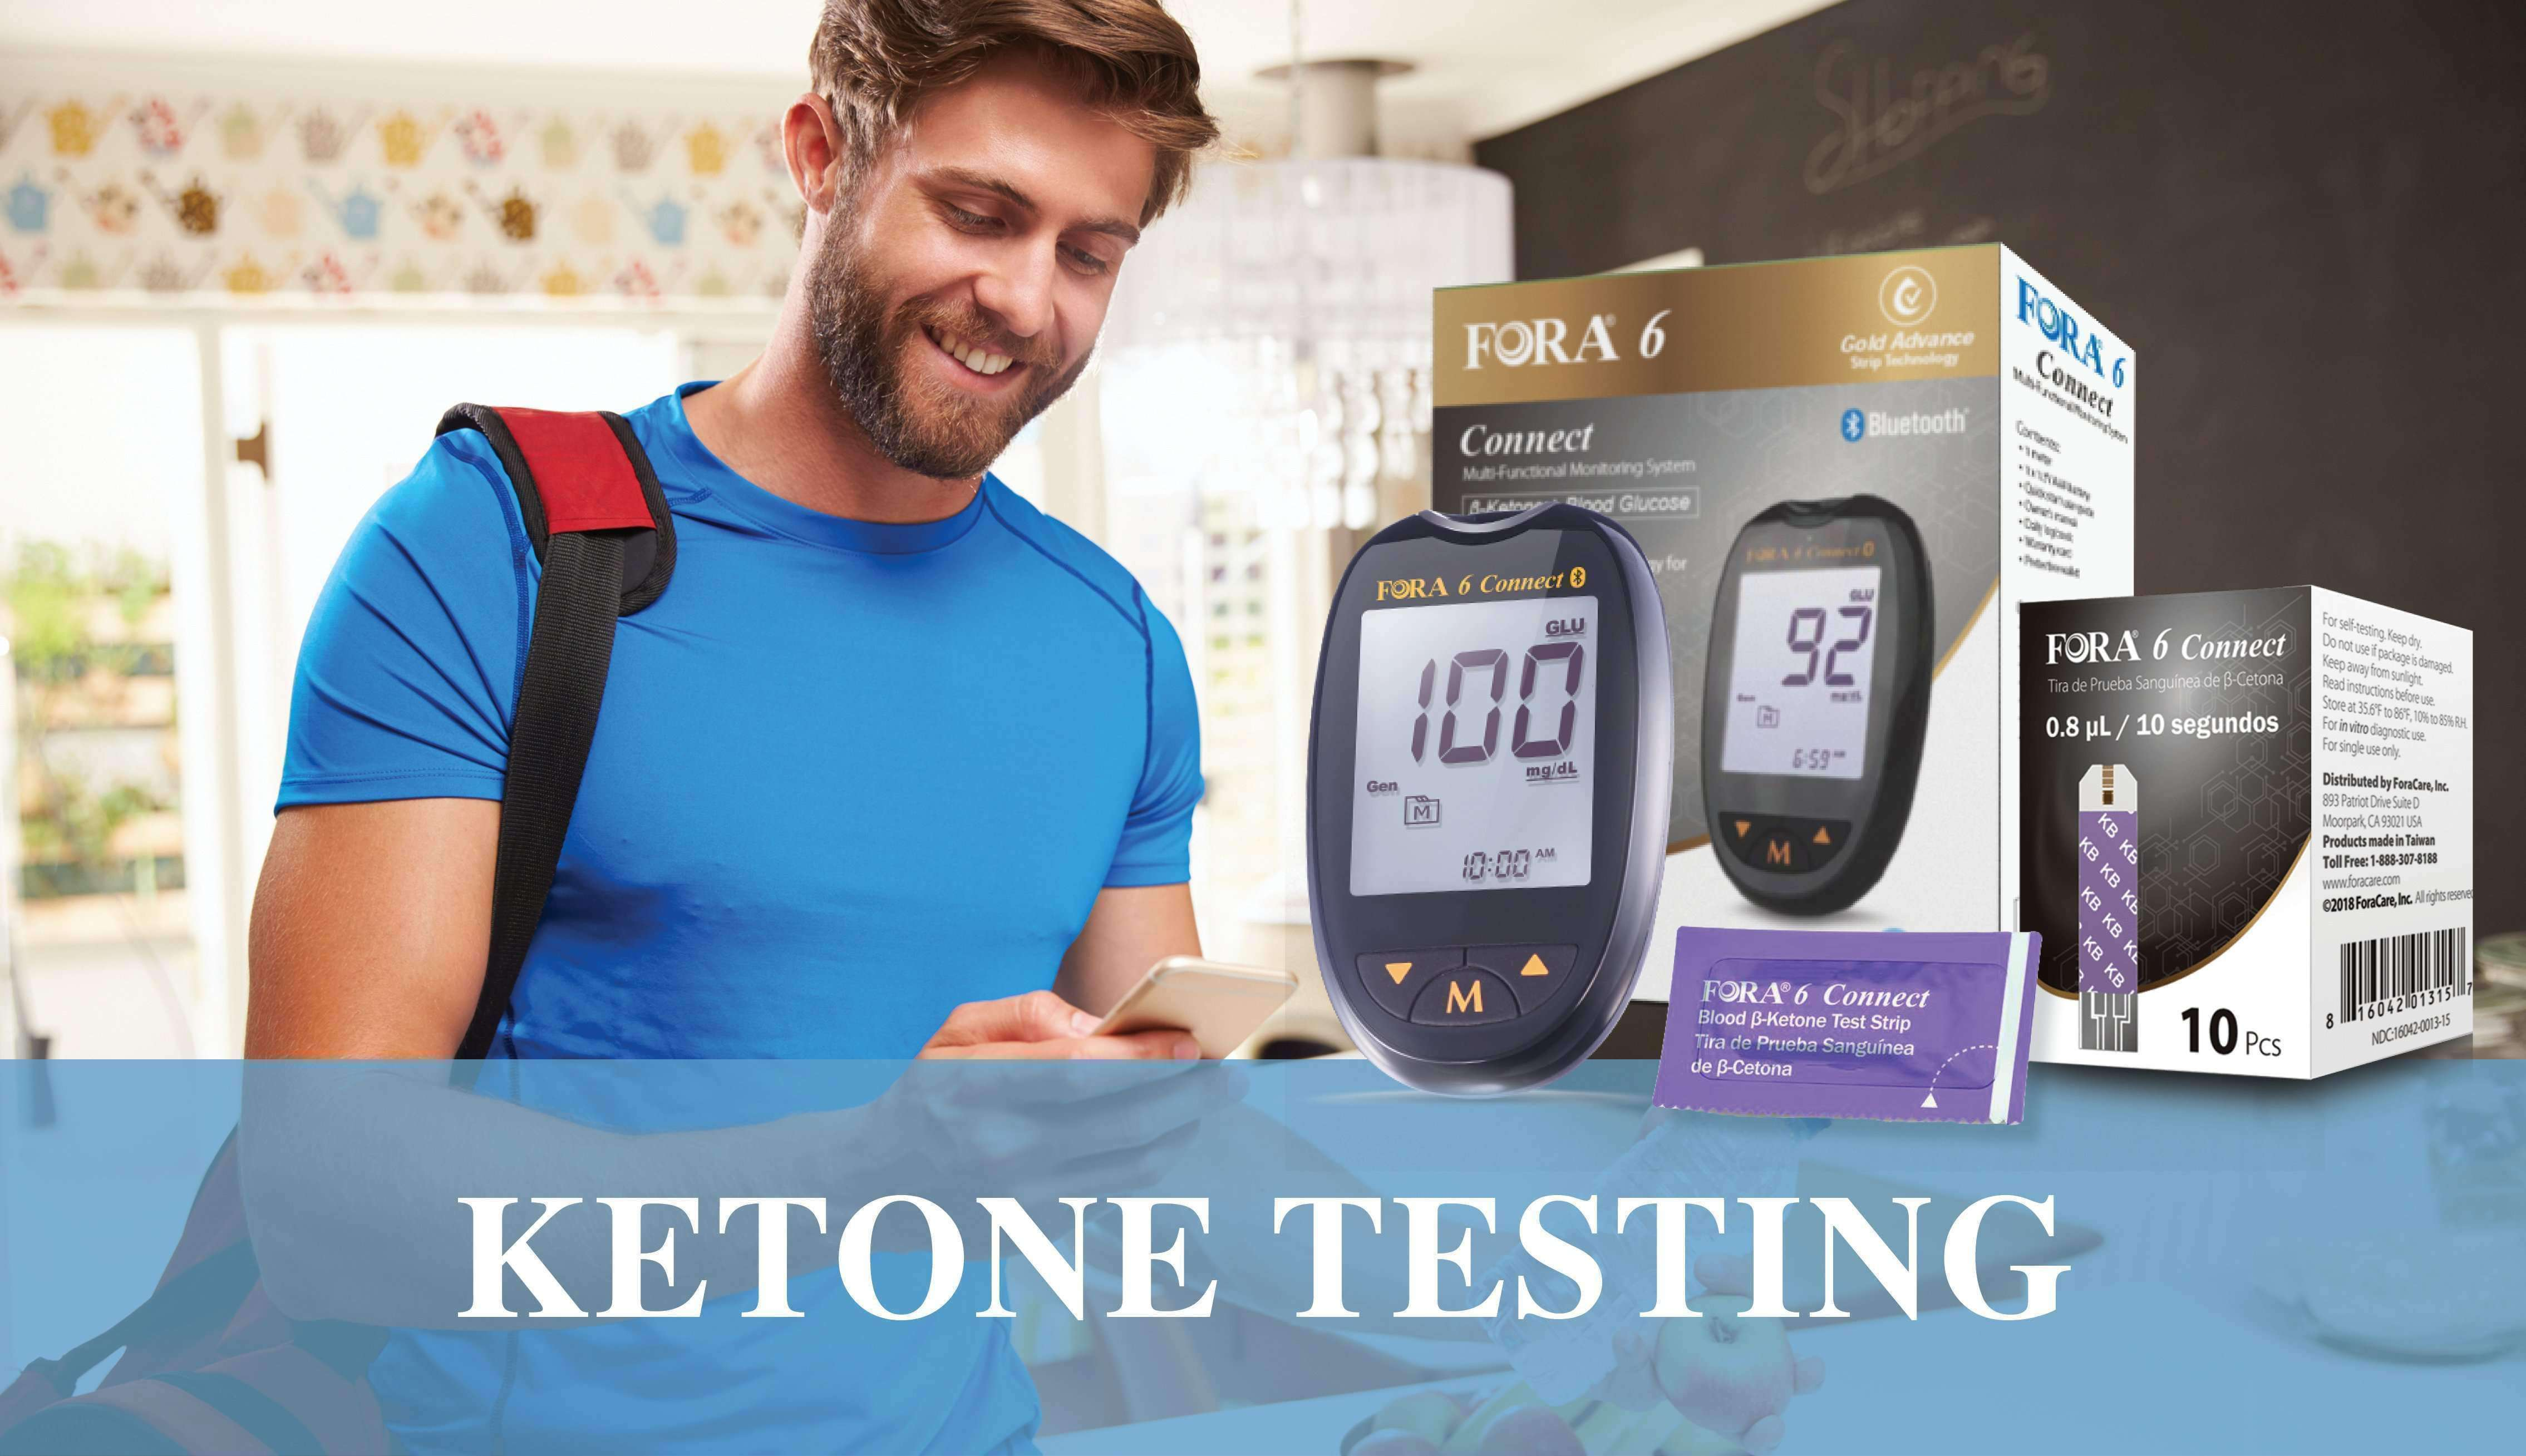 FORA Ketone Testing  Products